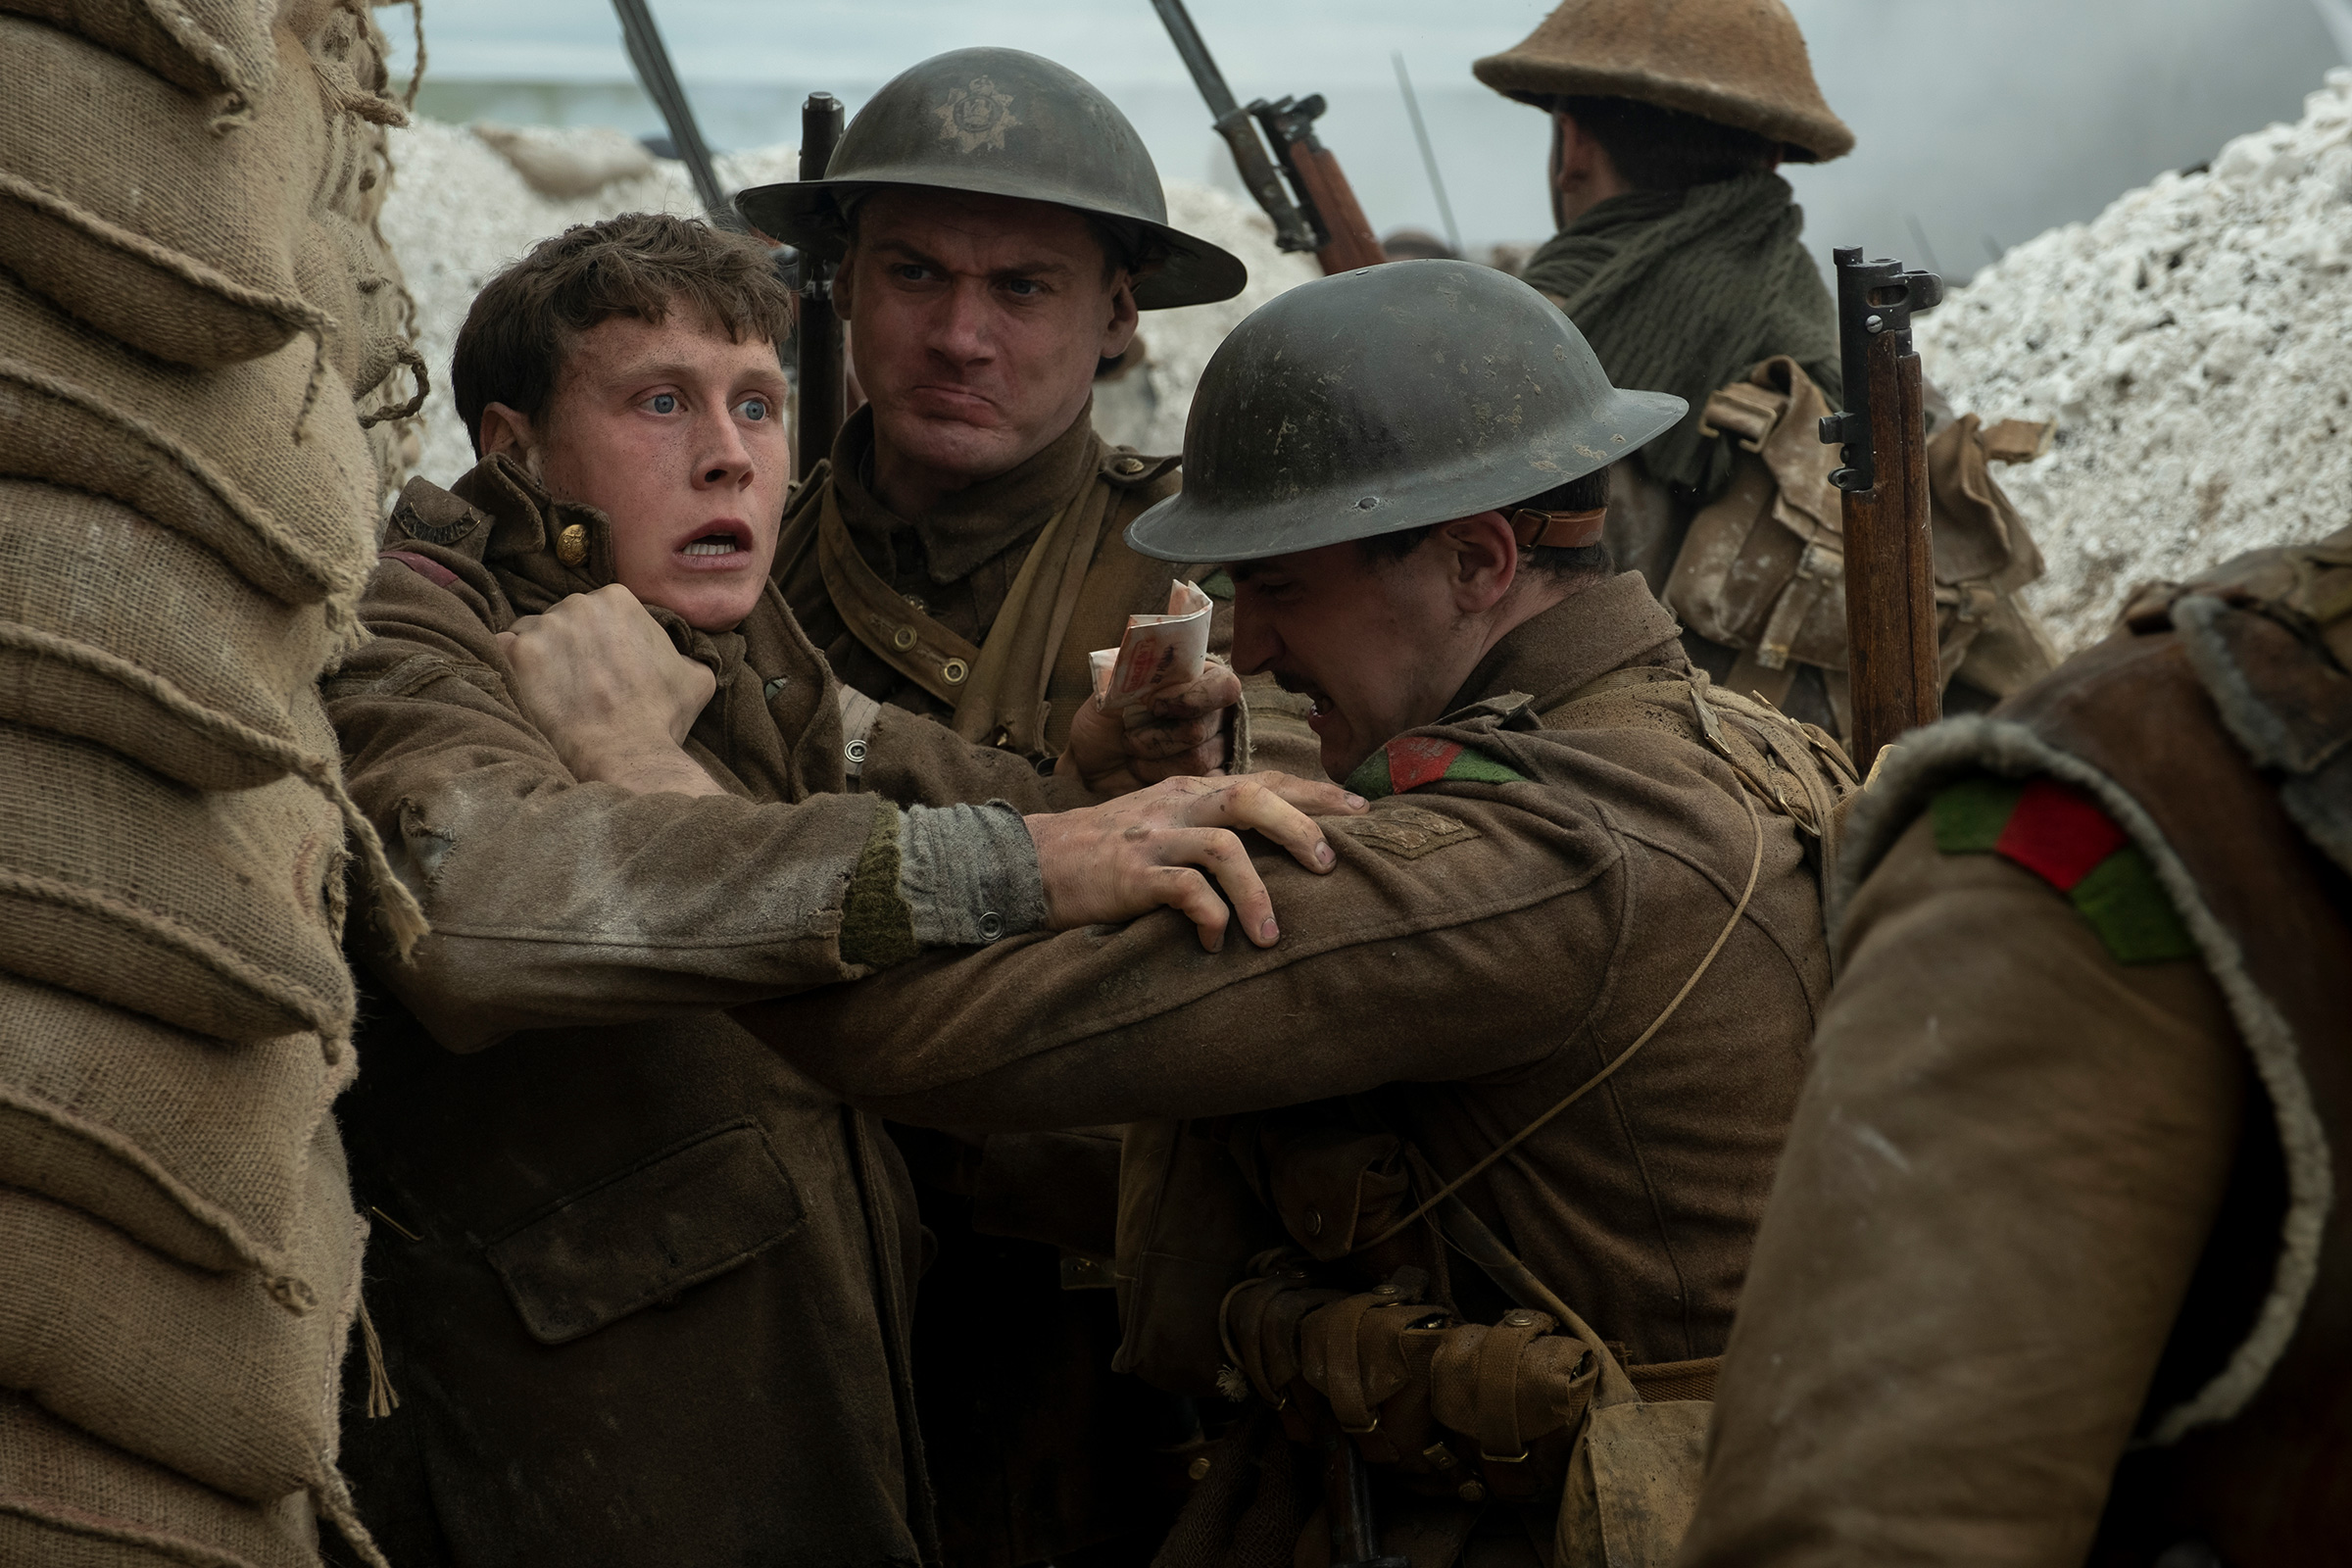 A bracing war drama shot in the style of one continuous take by director Sam Mendes, 1917 was nominated in 10 categories